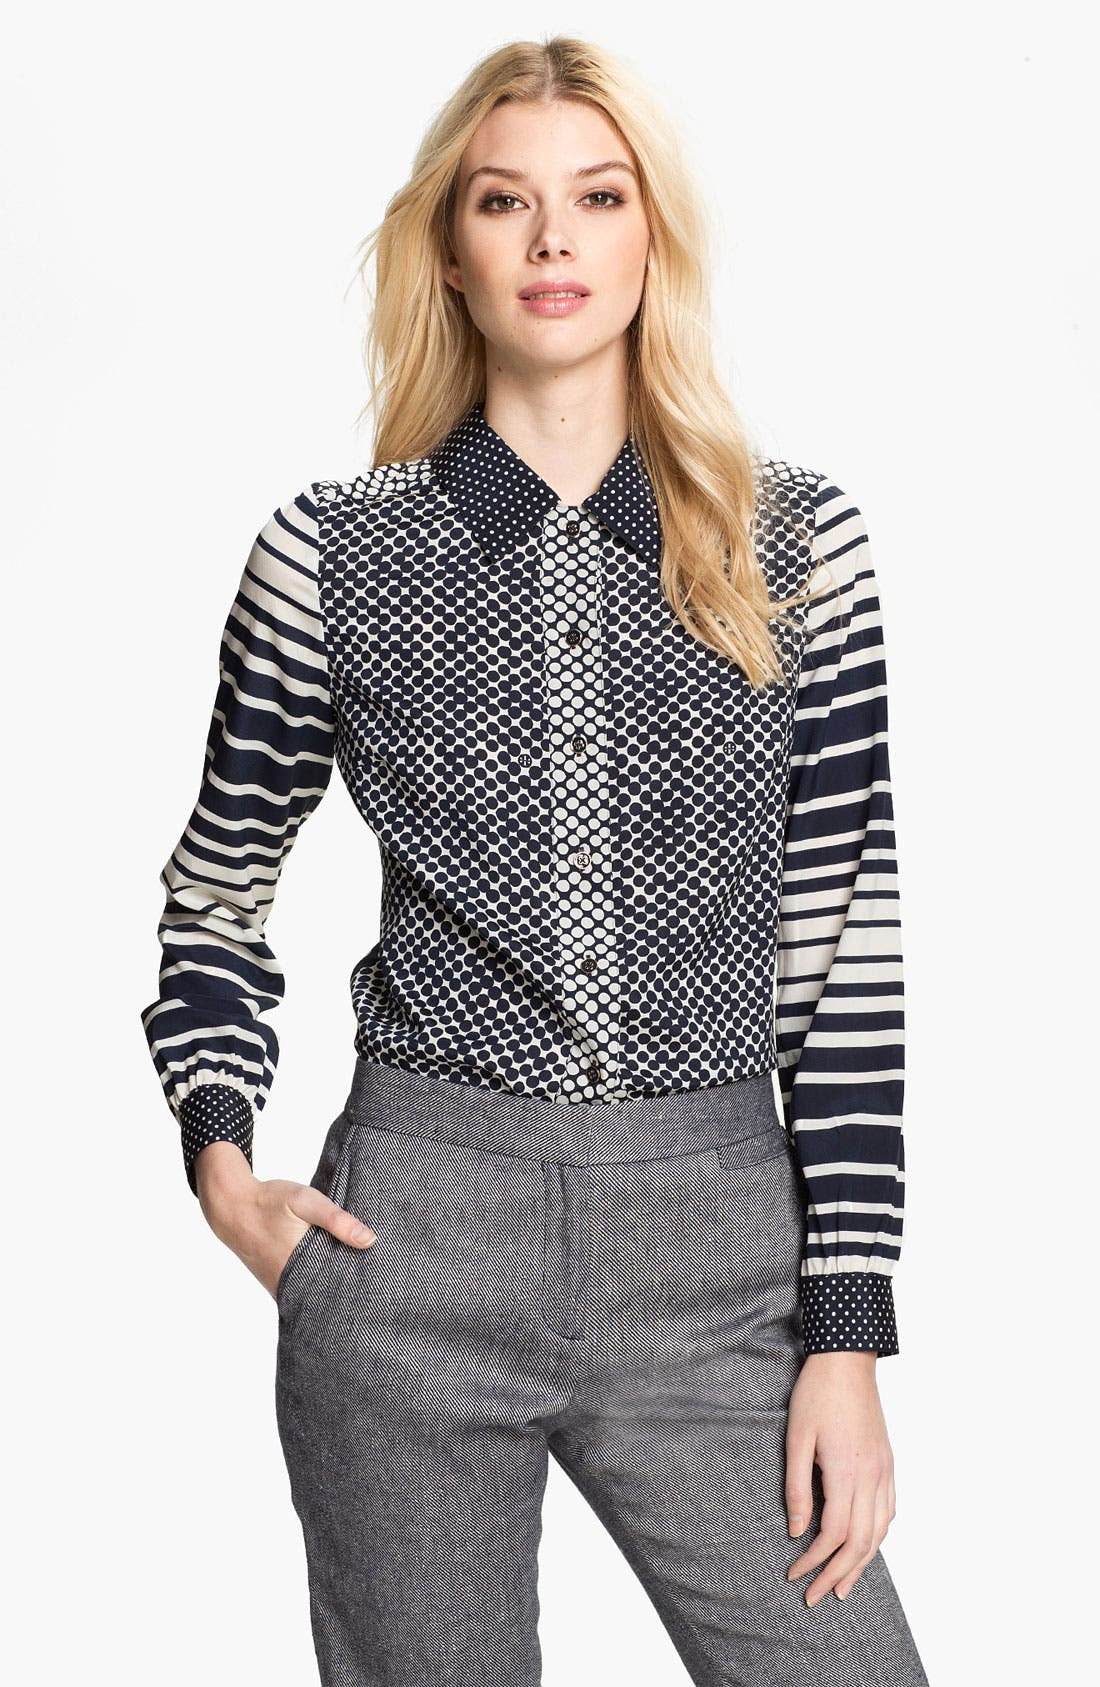 Main Image - Tory Burch 'Angelique' Stretch Silk Blouse